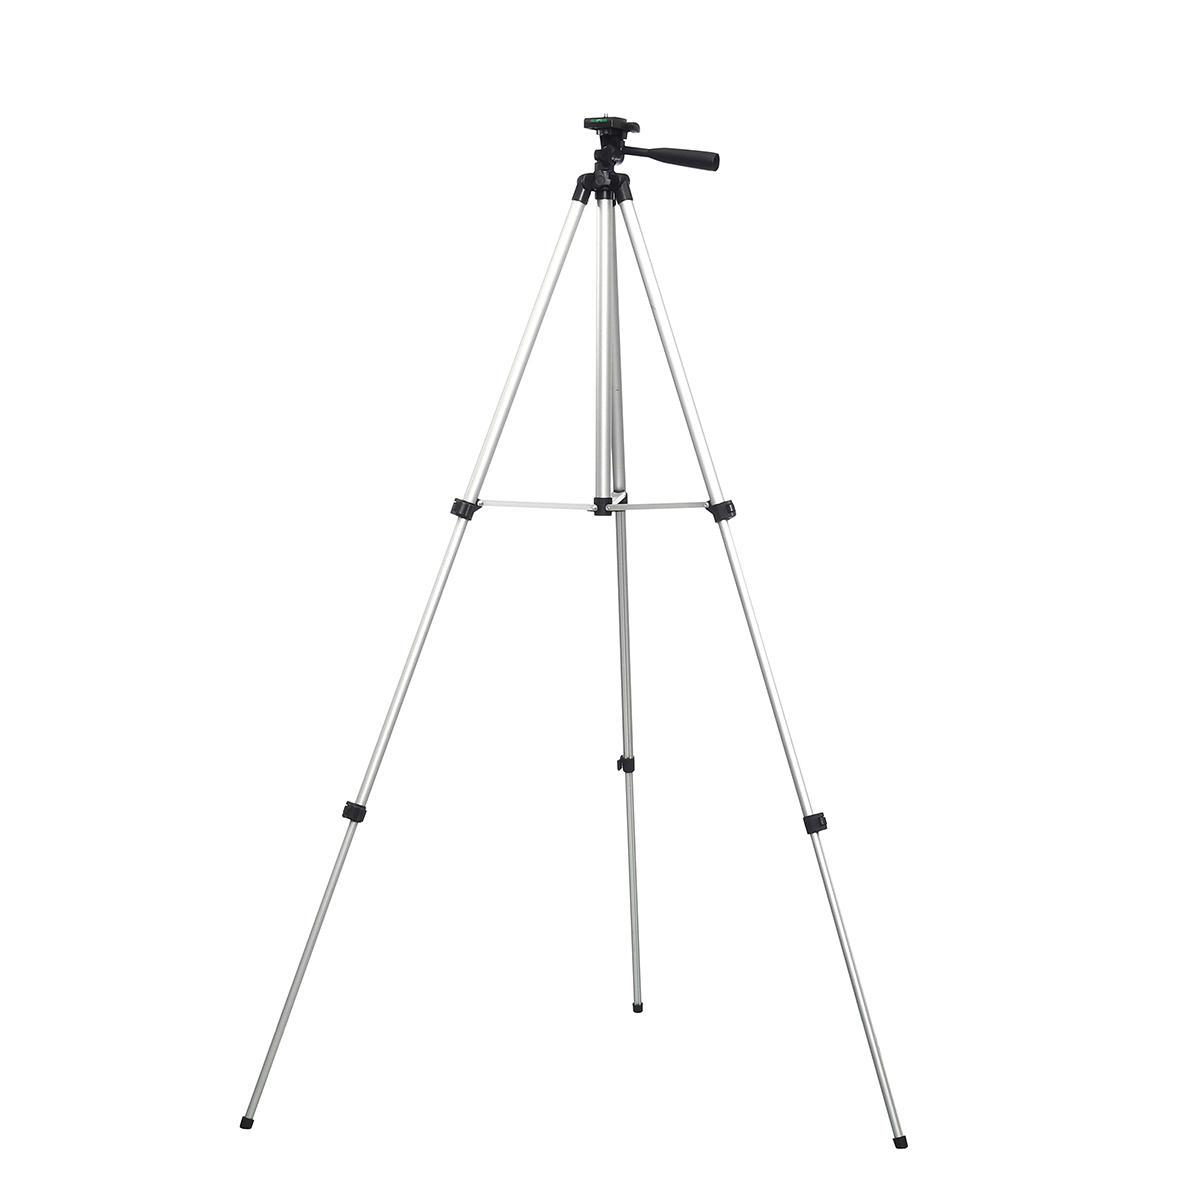 1.5m 3 Sections Aluminum Alloy Tripod Phone Holder With Phone Clip For iPhone Samsung Huawei Xiaomi